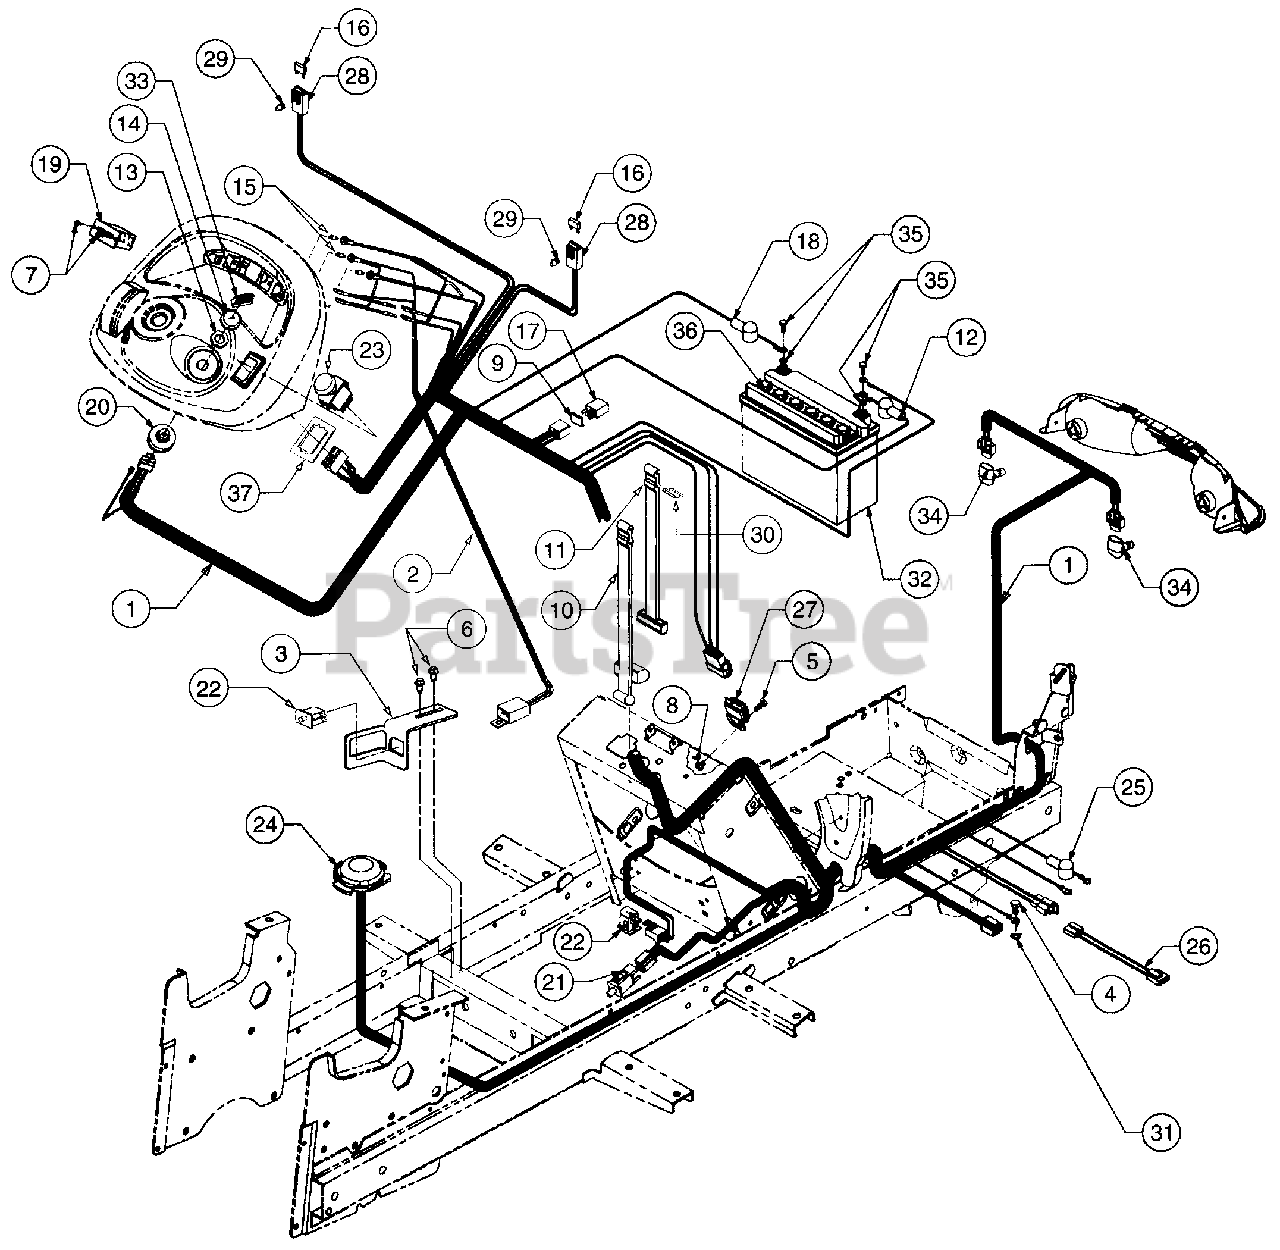 Cub Cadet 2130 Wiring Diagram from www.partstree.com